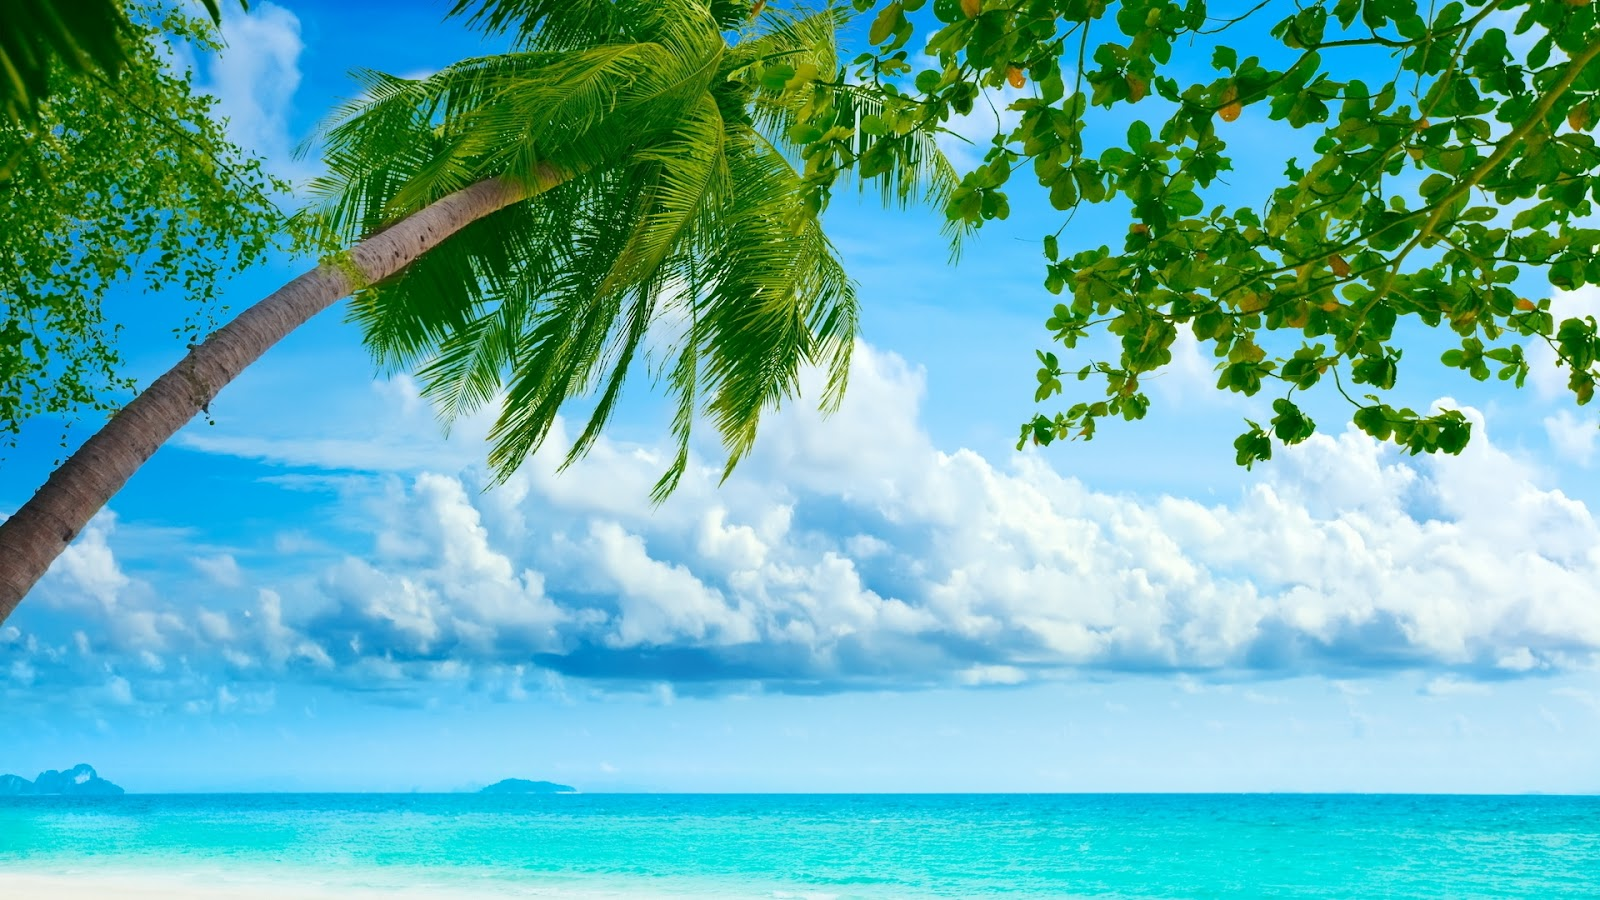 My Best Wallpapers Exotic Summer Picture 1600x900